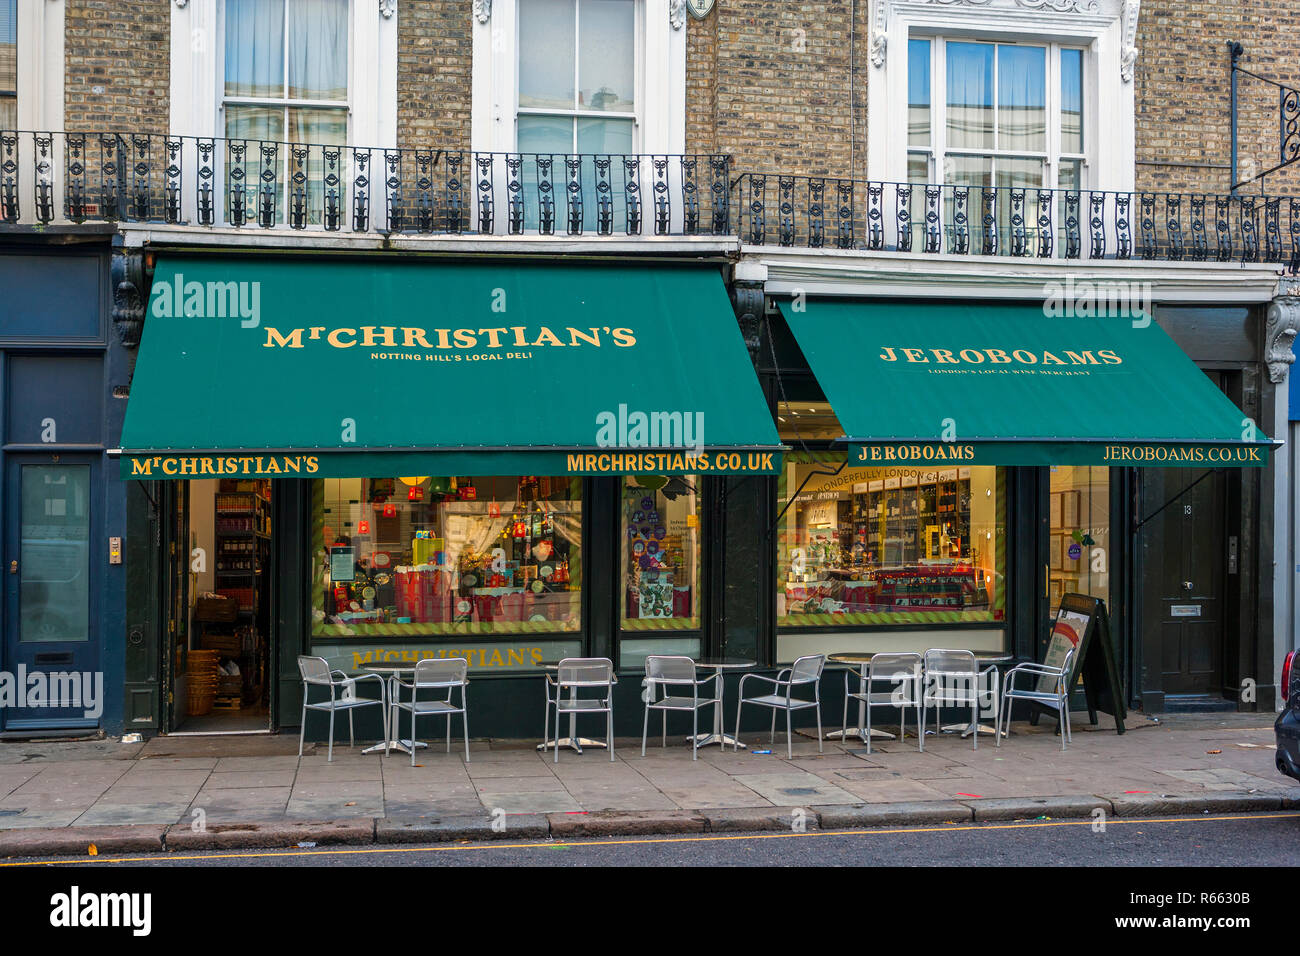 Mr Christian's Deli and Catering, Notting Hill, London - Stock Image